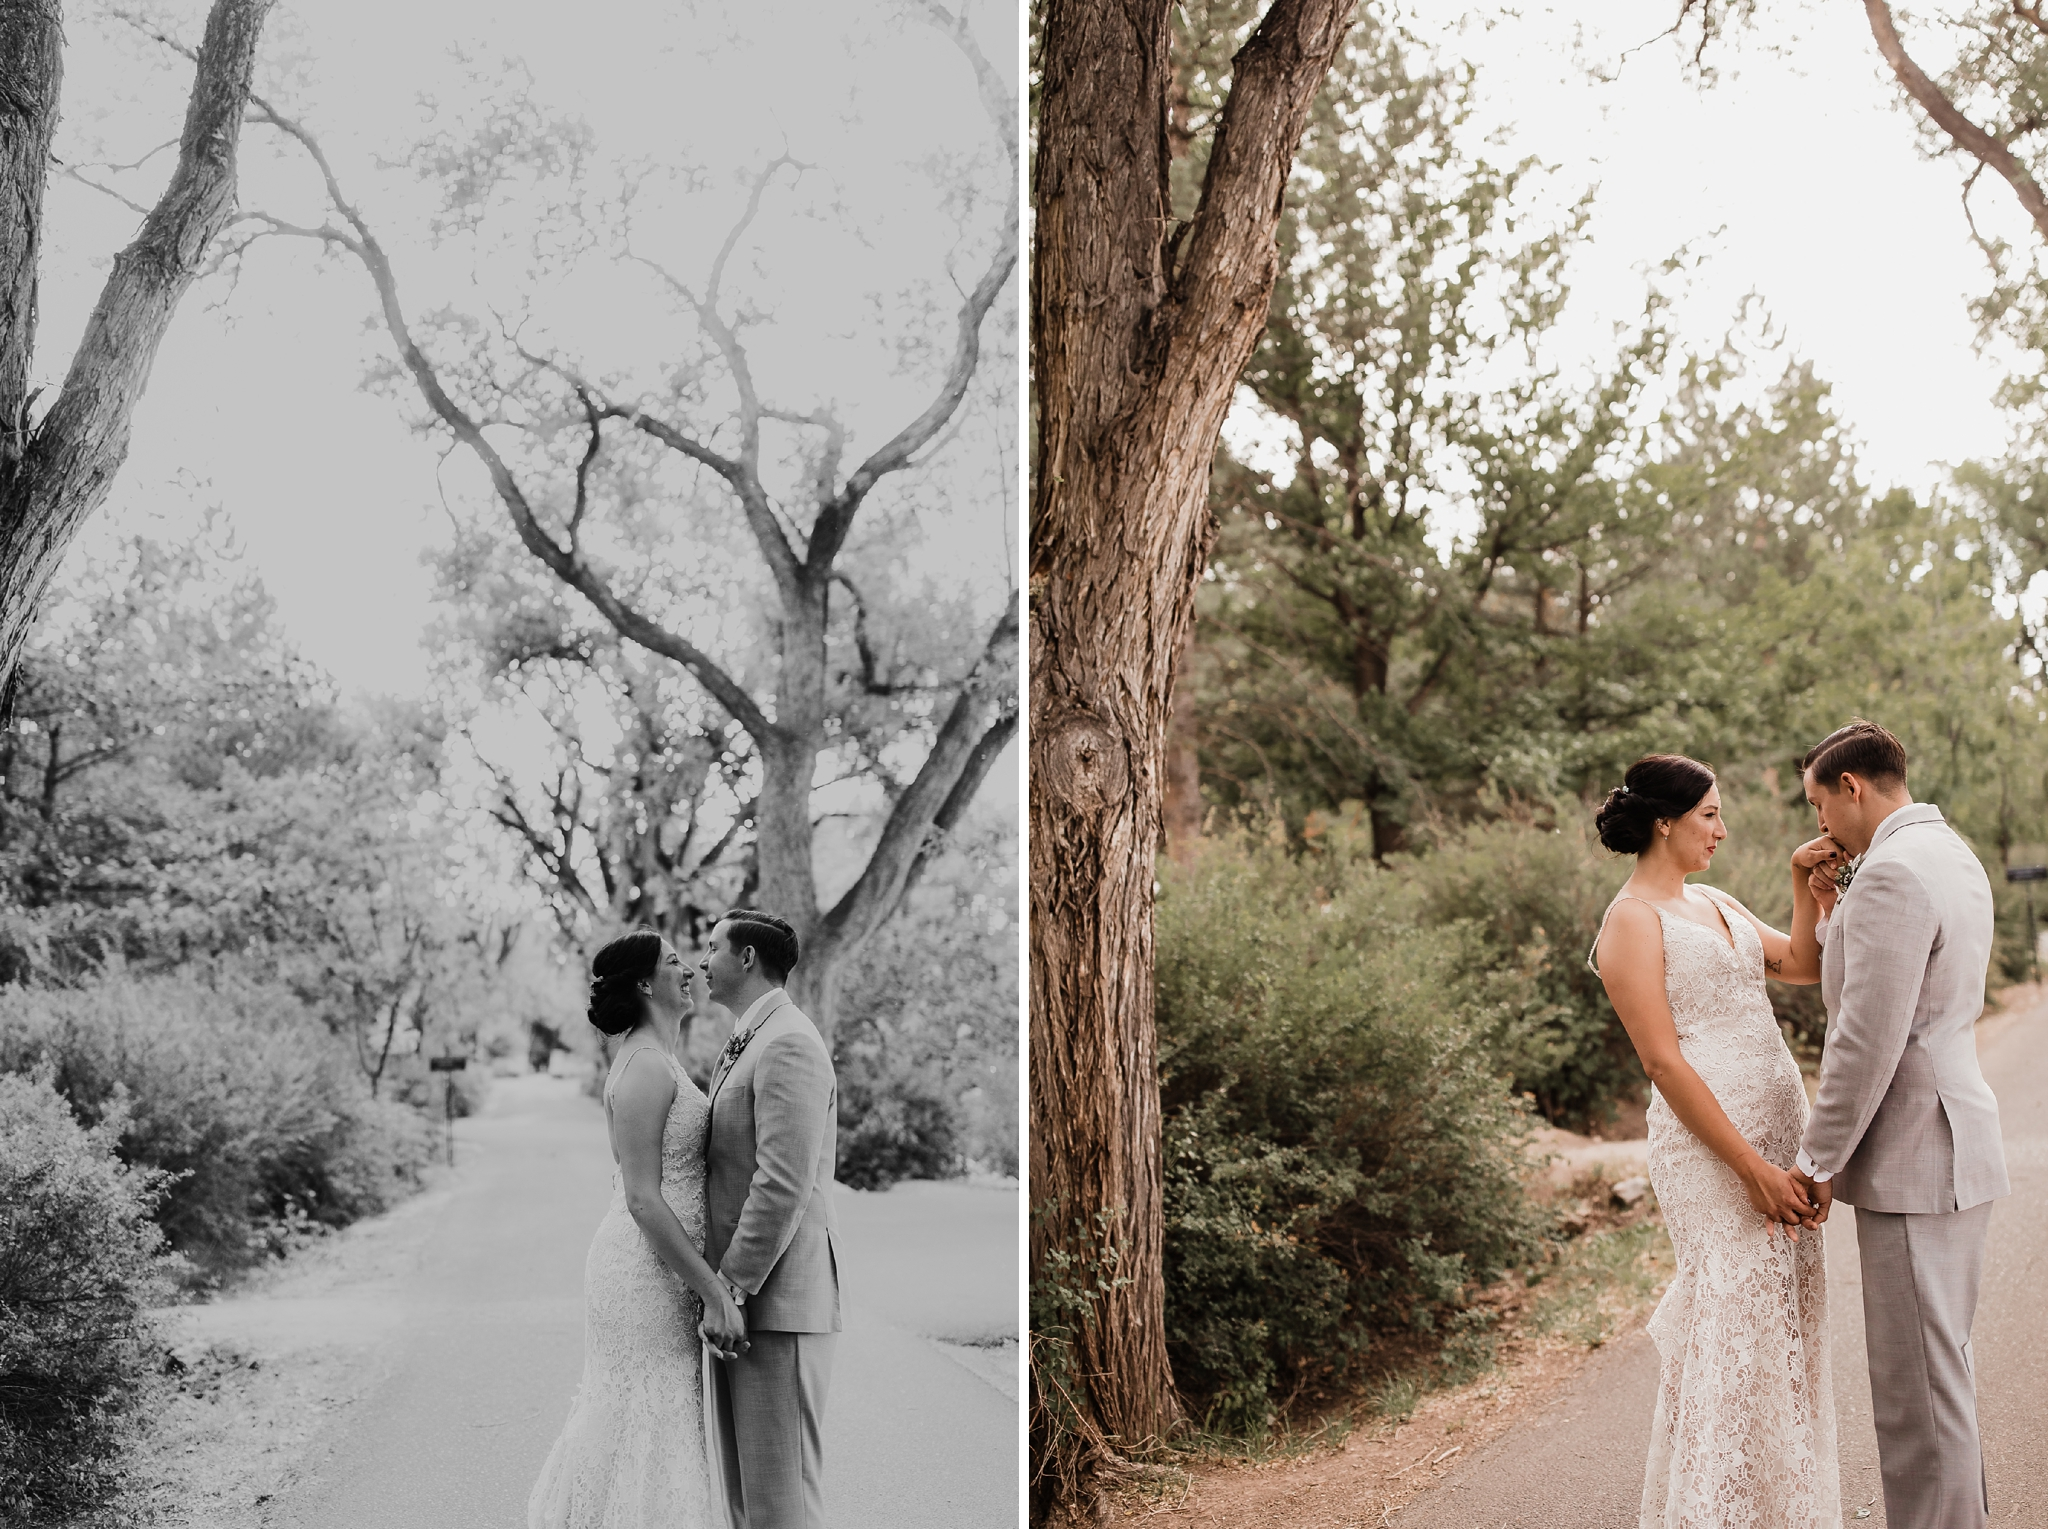 Alicia+lucia+photography+-+albuquerque+wedding+photographer+-+santa+fe+wedding+photography+-+new+mexico+wedding+photographer+-+new+mexico+wedding+-+new+mexico+wedding+-+summer+wedding+-+los+poblanos+wedding+-+colorado+bride_0096.jpg